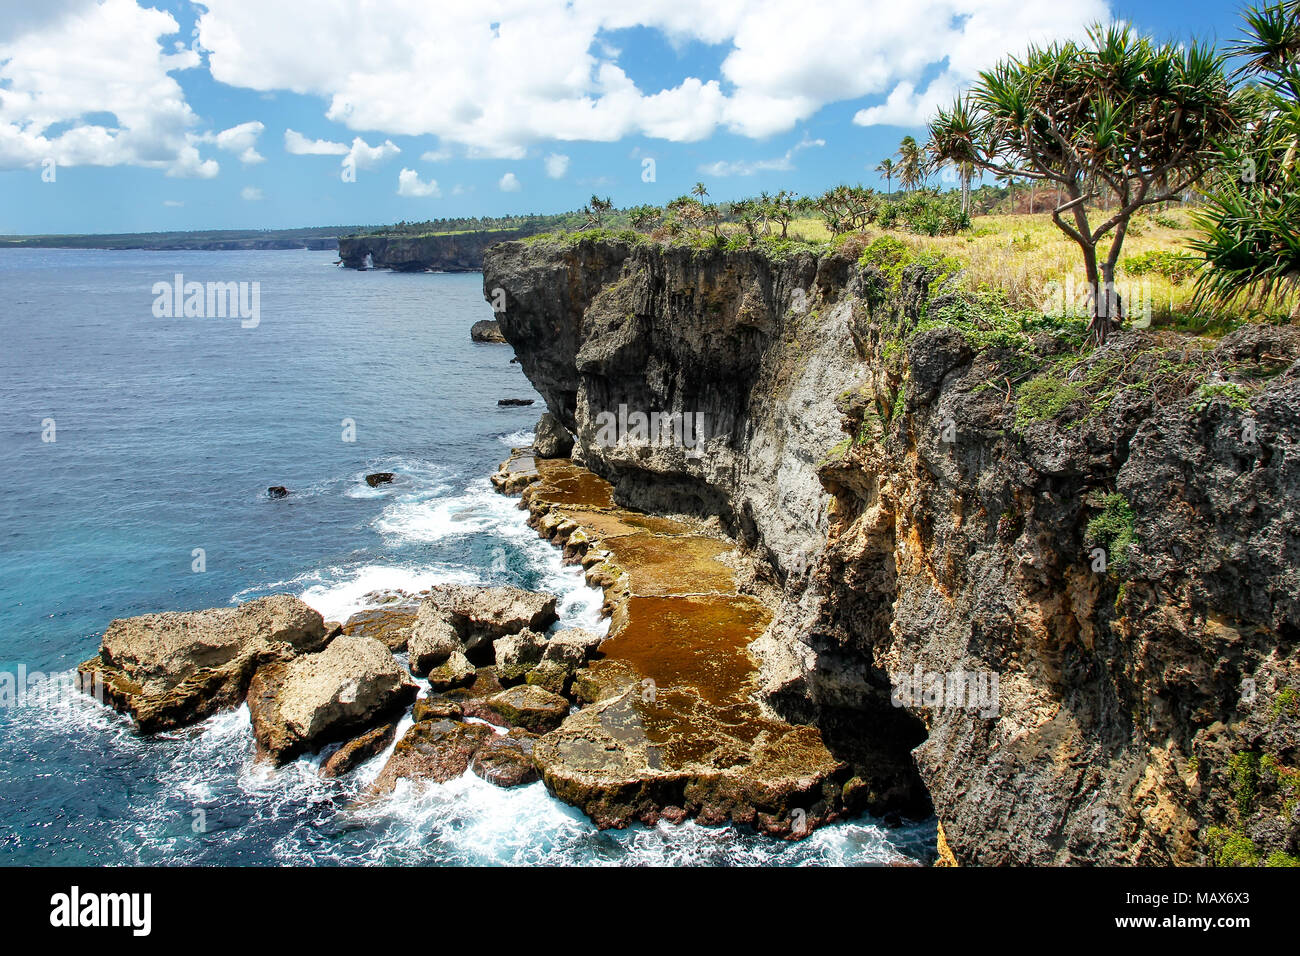 Cliffs on the southern shore of Tongatapu island in Tonga. Tongatapu is the main island of the Kingdom of Tonga. - Stock Image